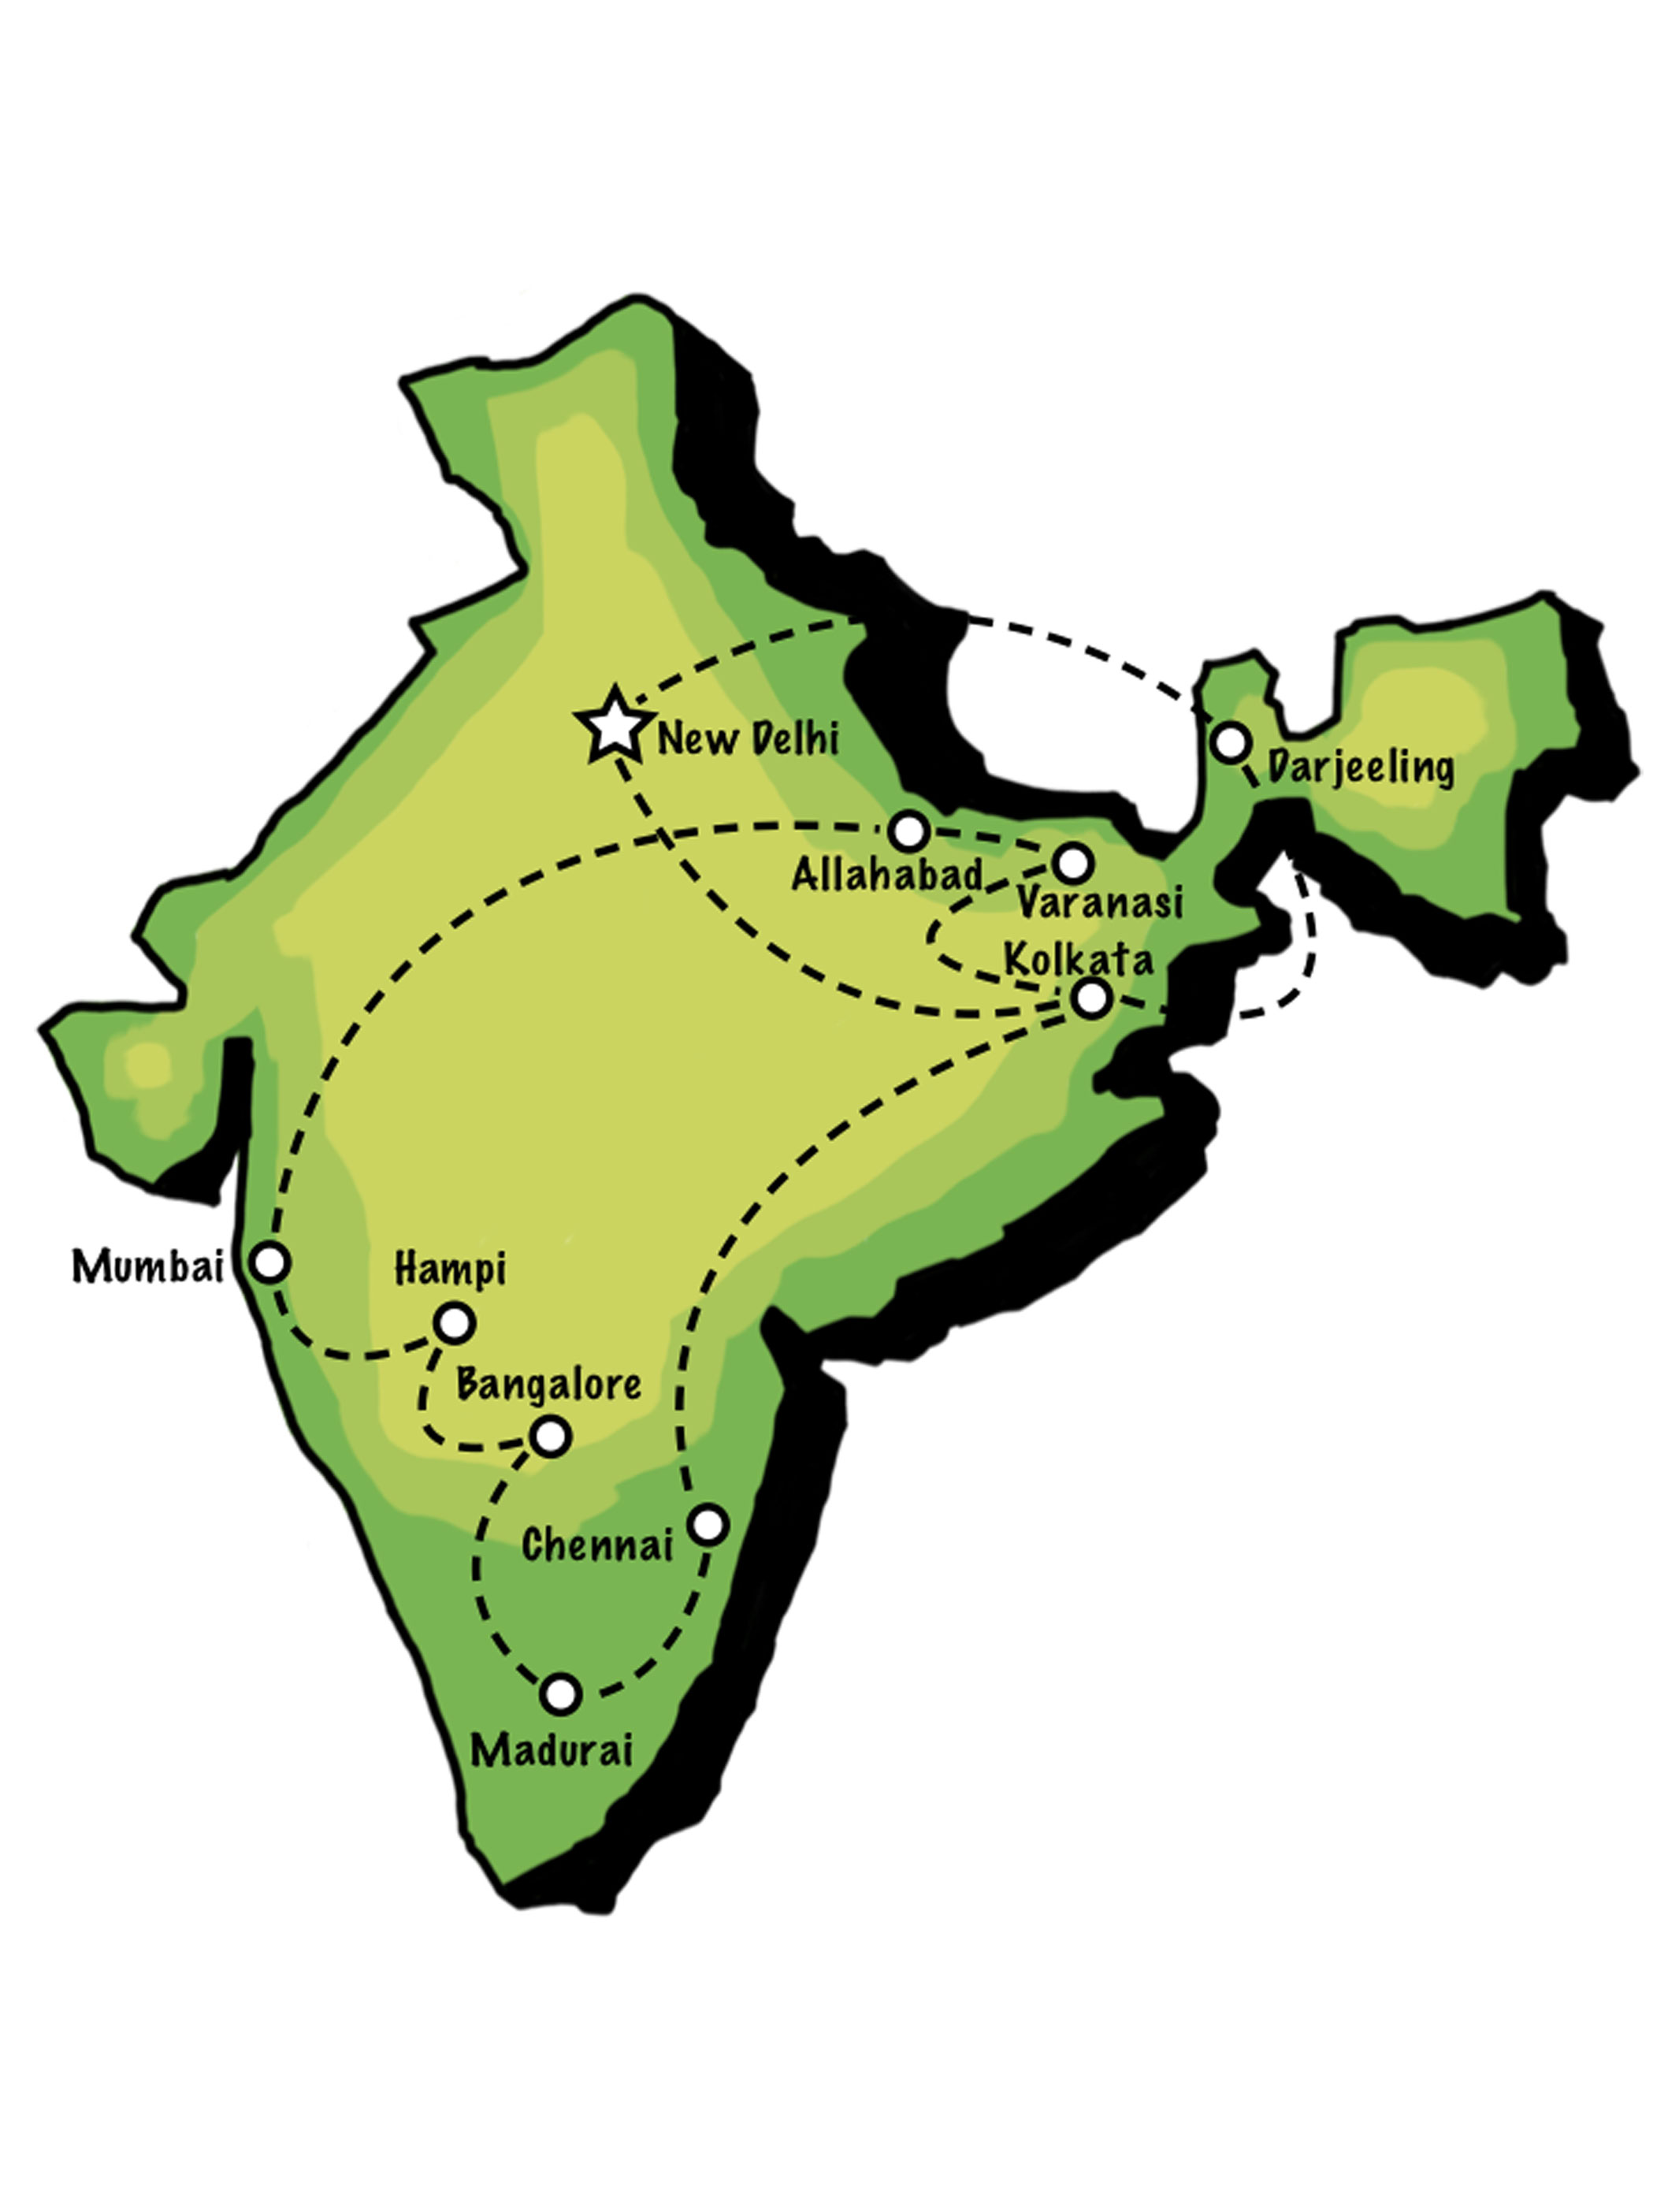 #7_spotillustration_india_map_amata